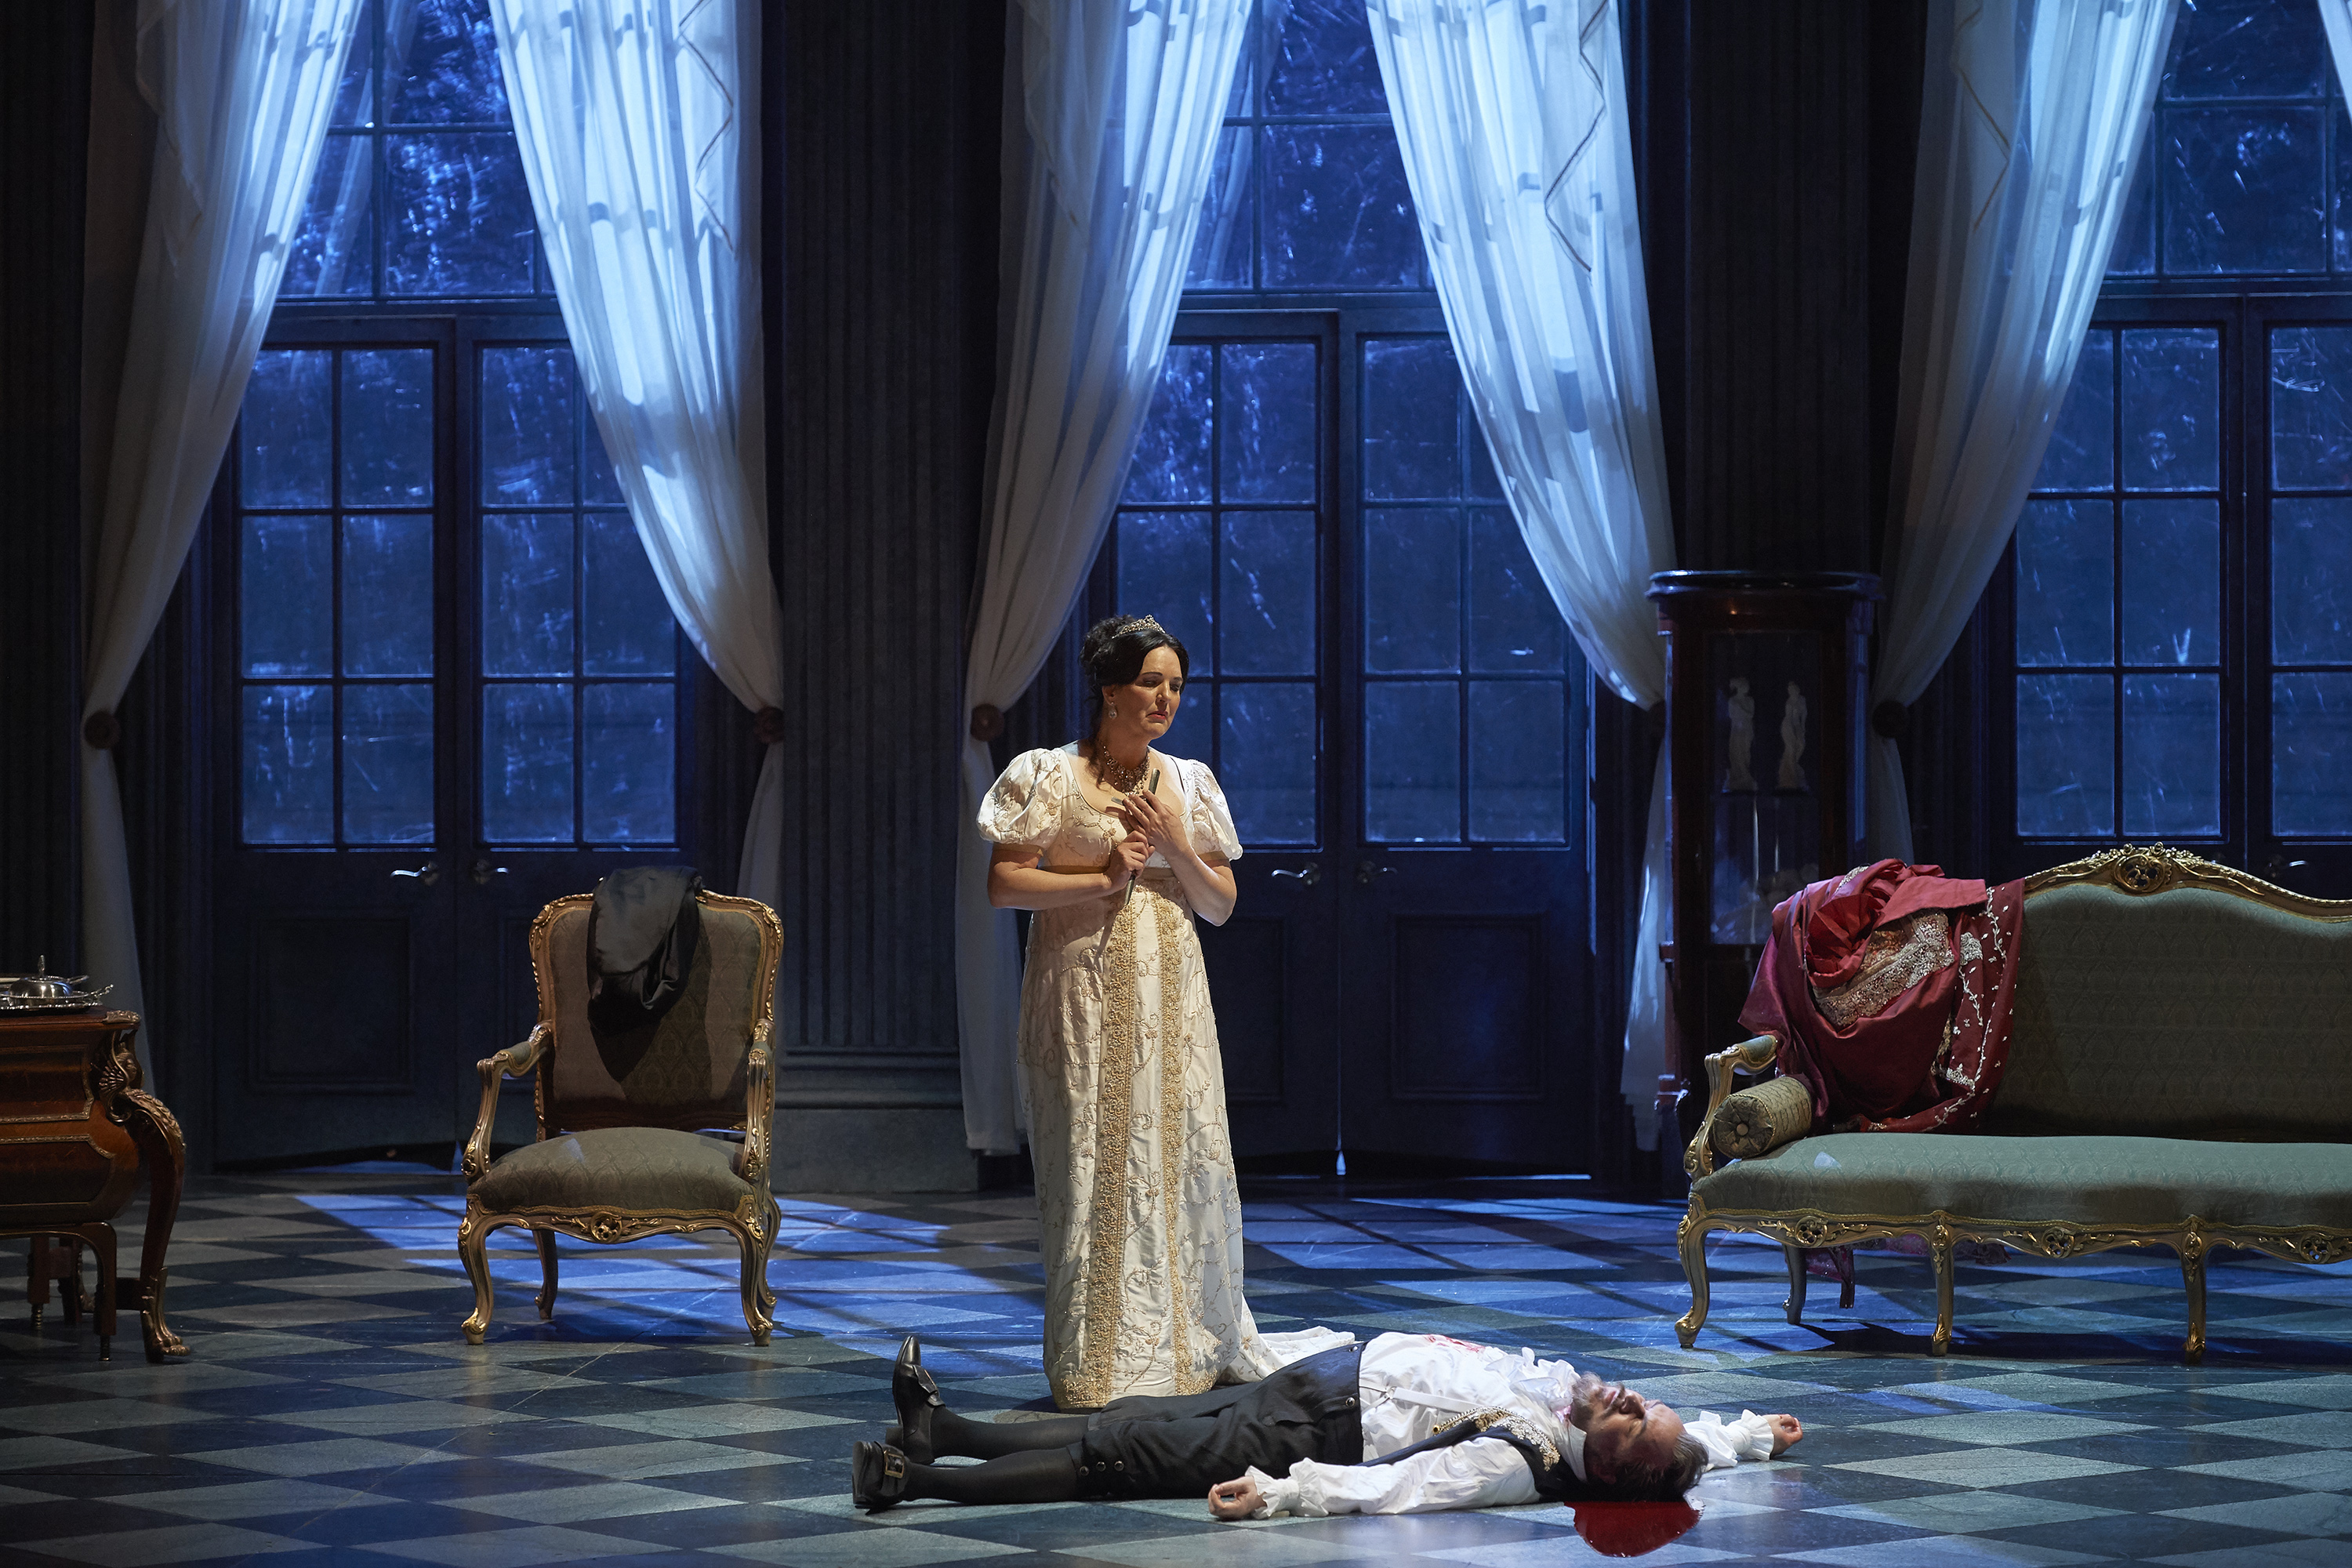 BWW Review: Canadian Opera Company's TOSCA is a Total Triumph